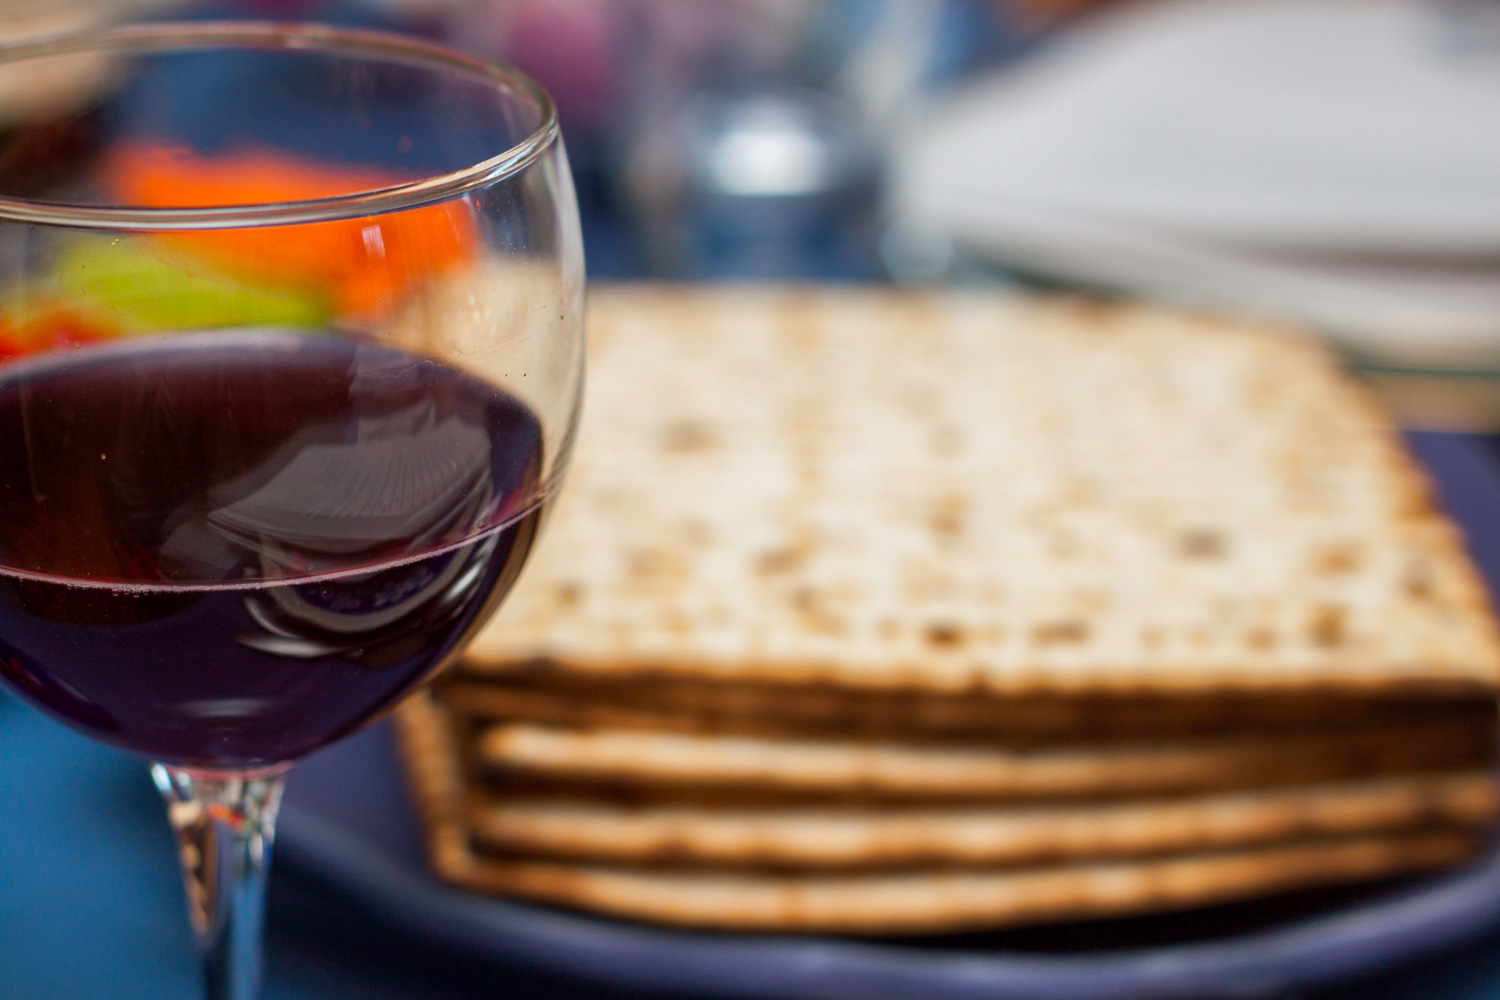 Passover seder wine with matzoh crackers in the background.